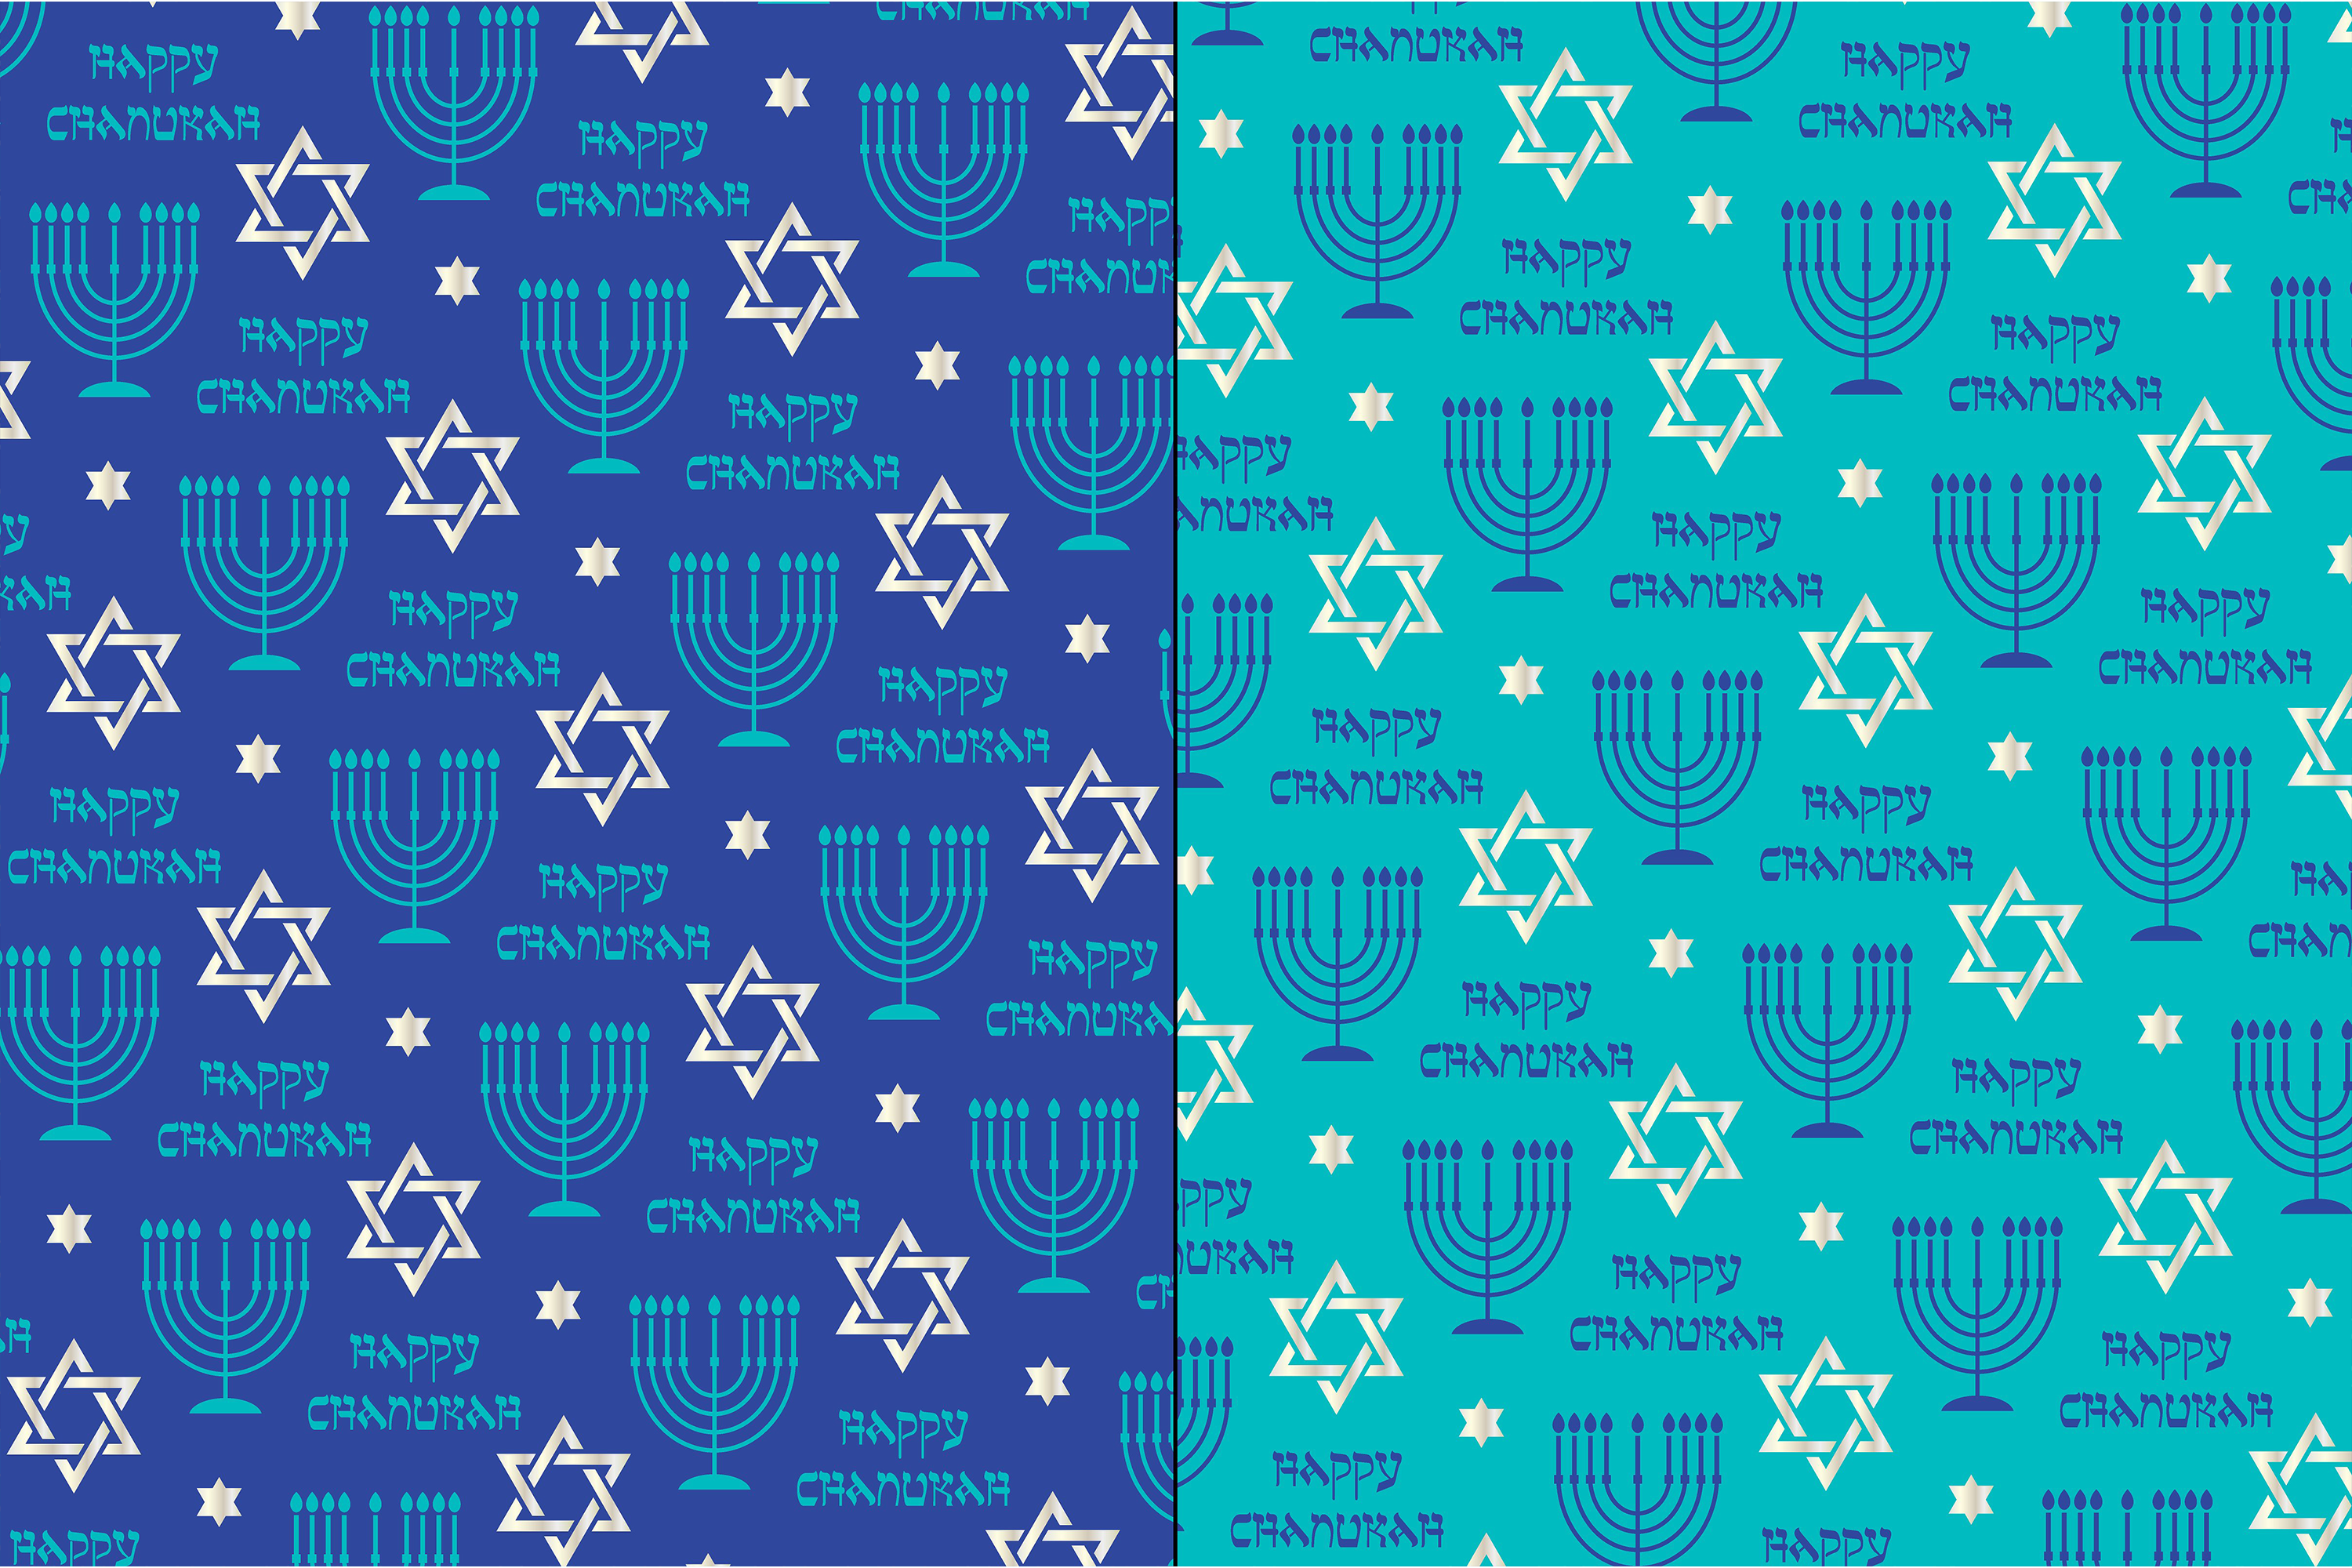 Silver Blue Chanukah Patterns example image 2